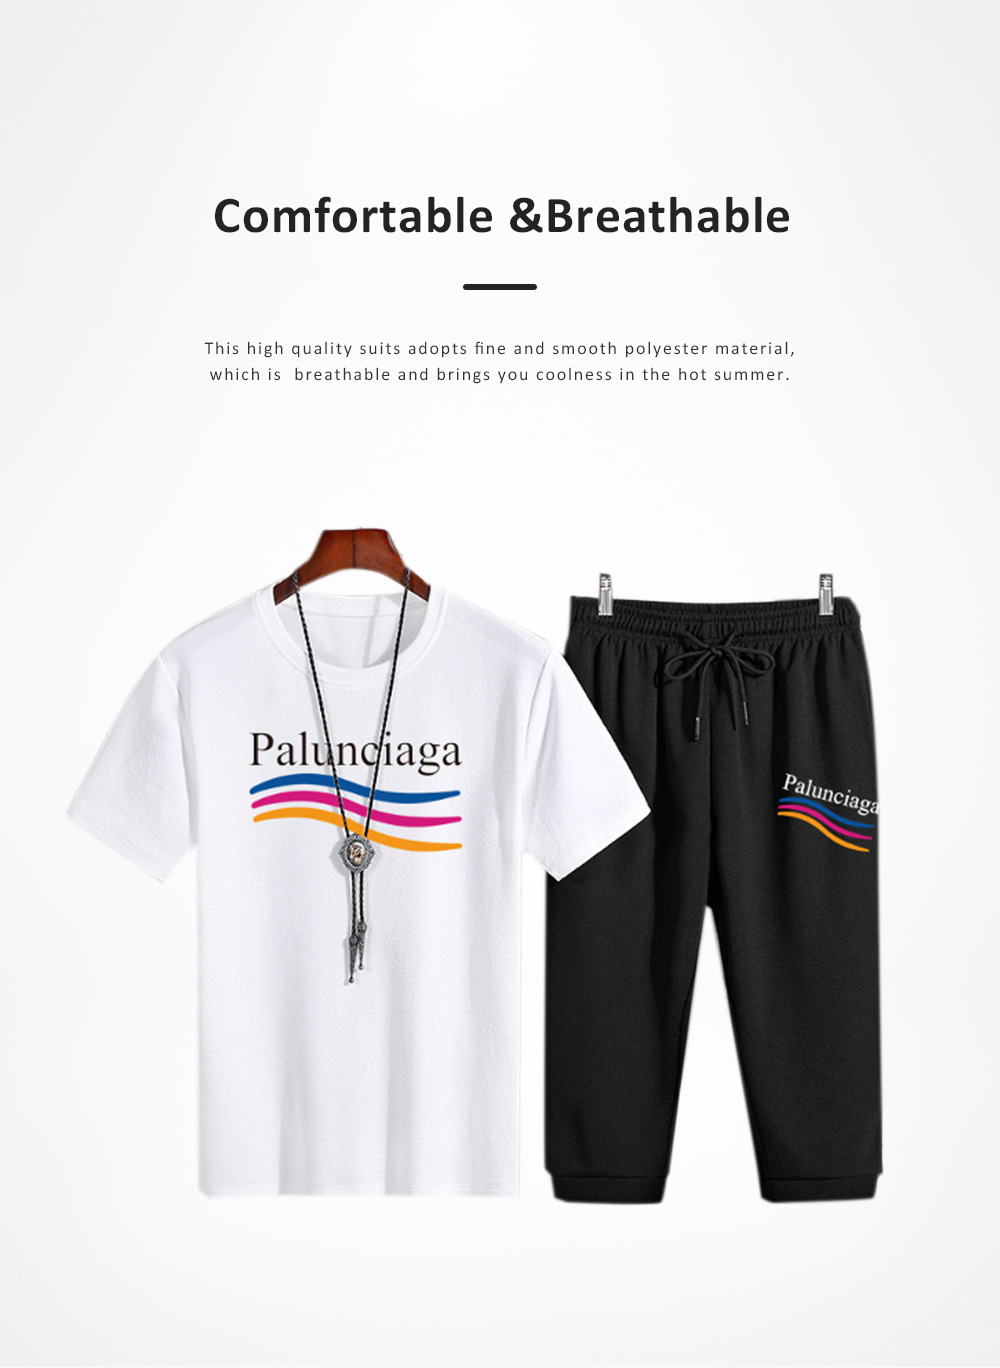 2019 Latest Casual Suit Two Piece Sports Set for Men, High Quality Loose Style Polyester Material Short Sleeve Shirt Capri Pants 2